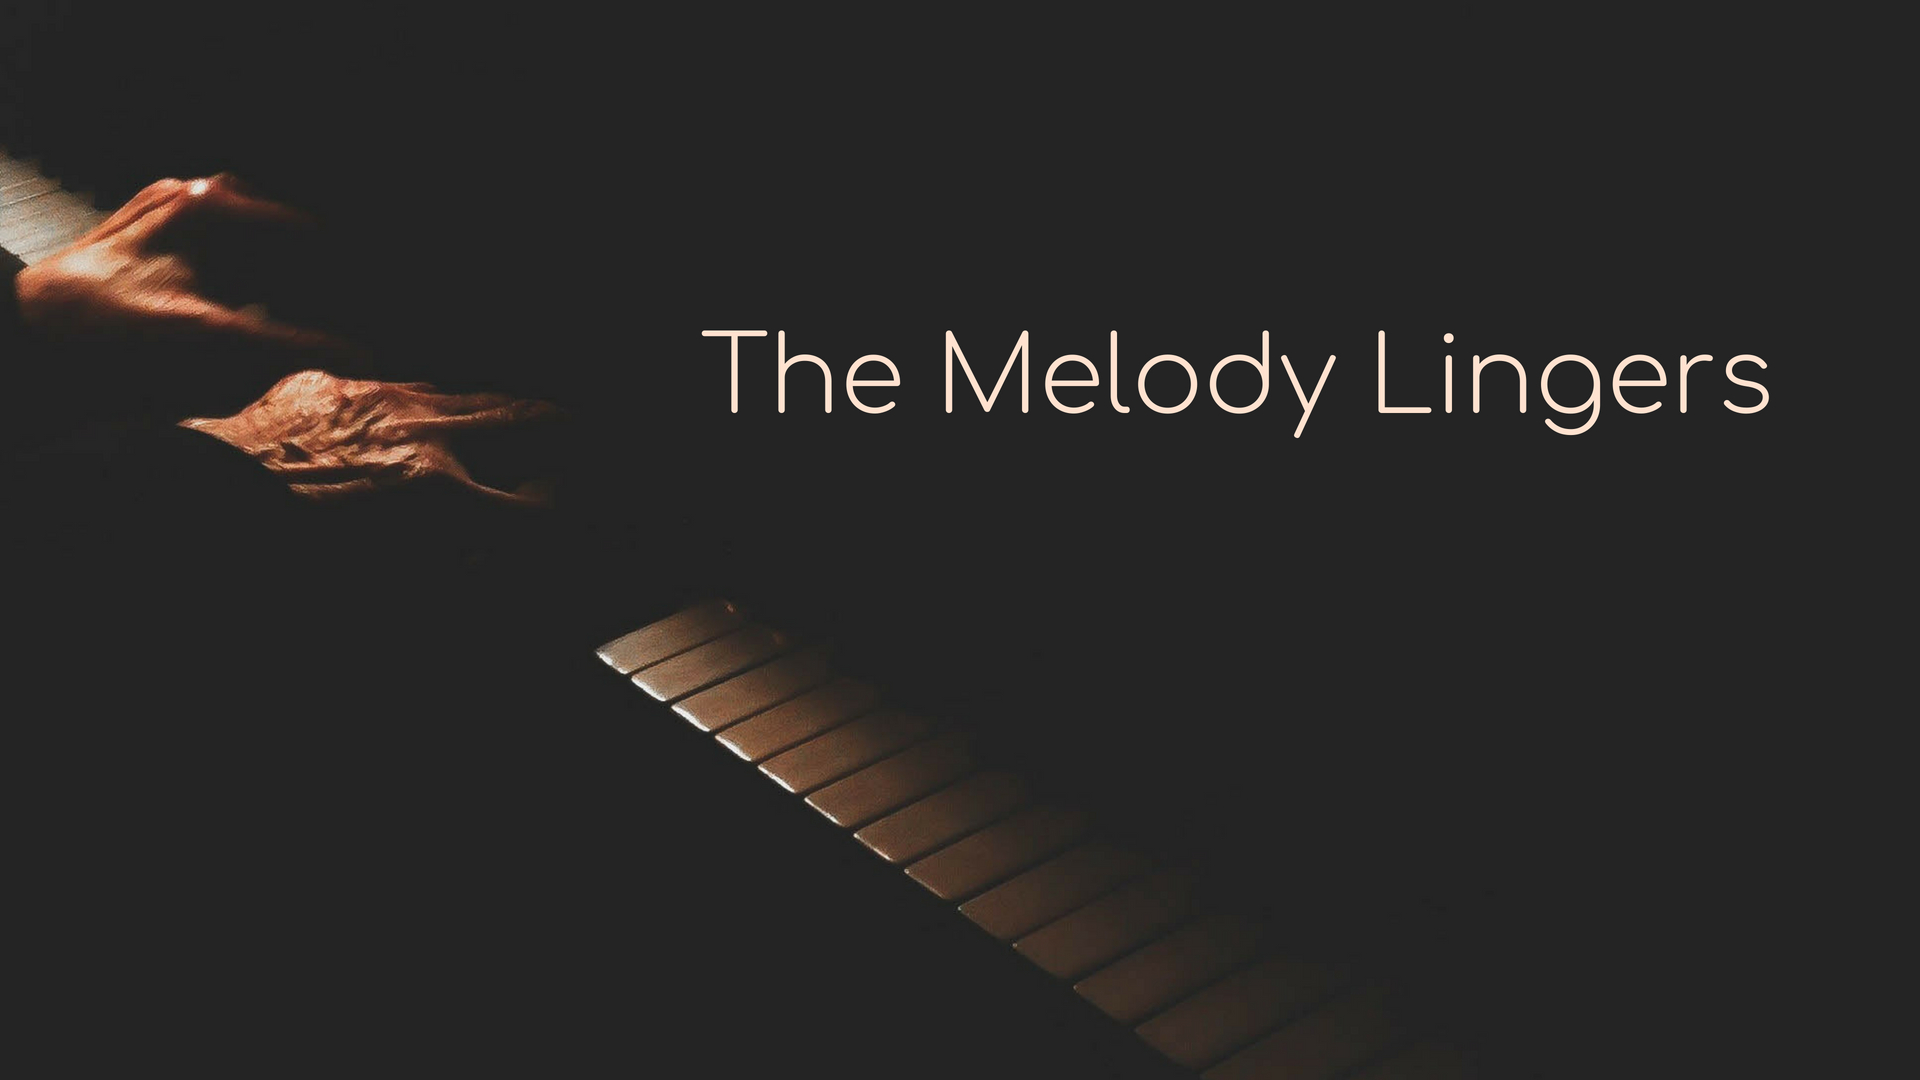 banner-the-melody-lingers-01.jpg